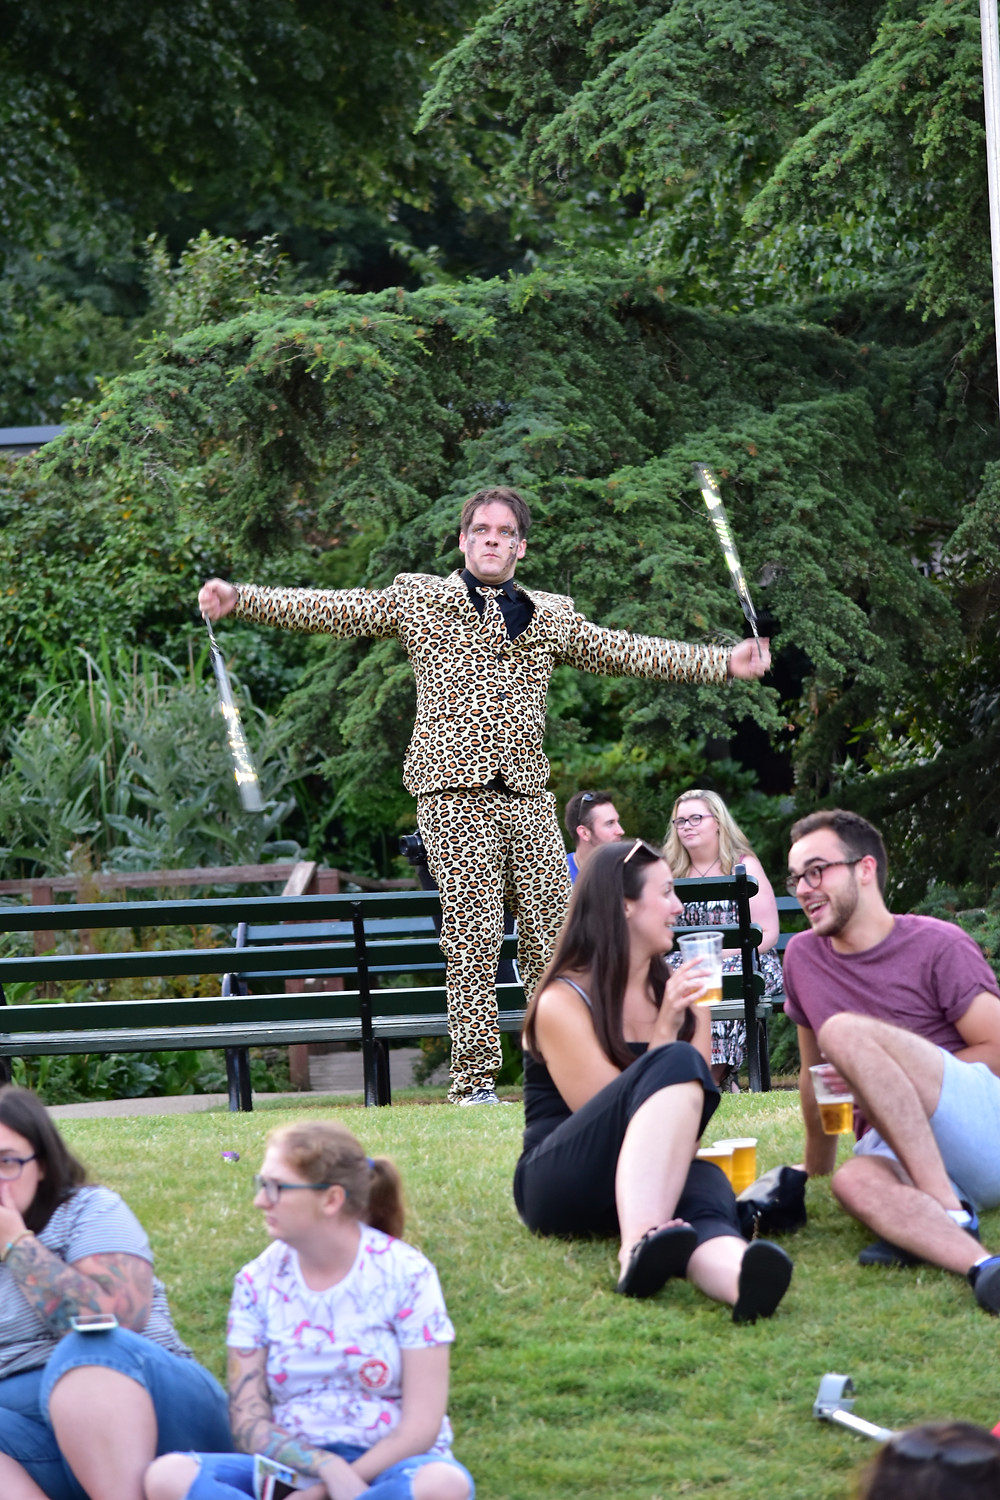 Juggler on the lawn